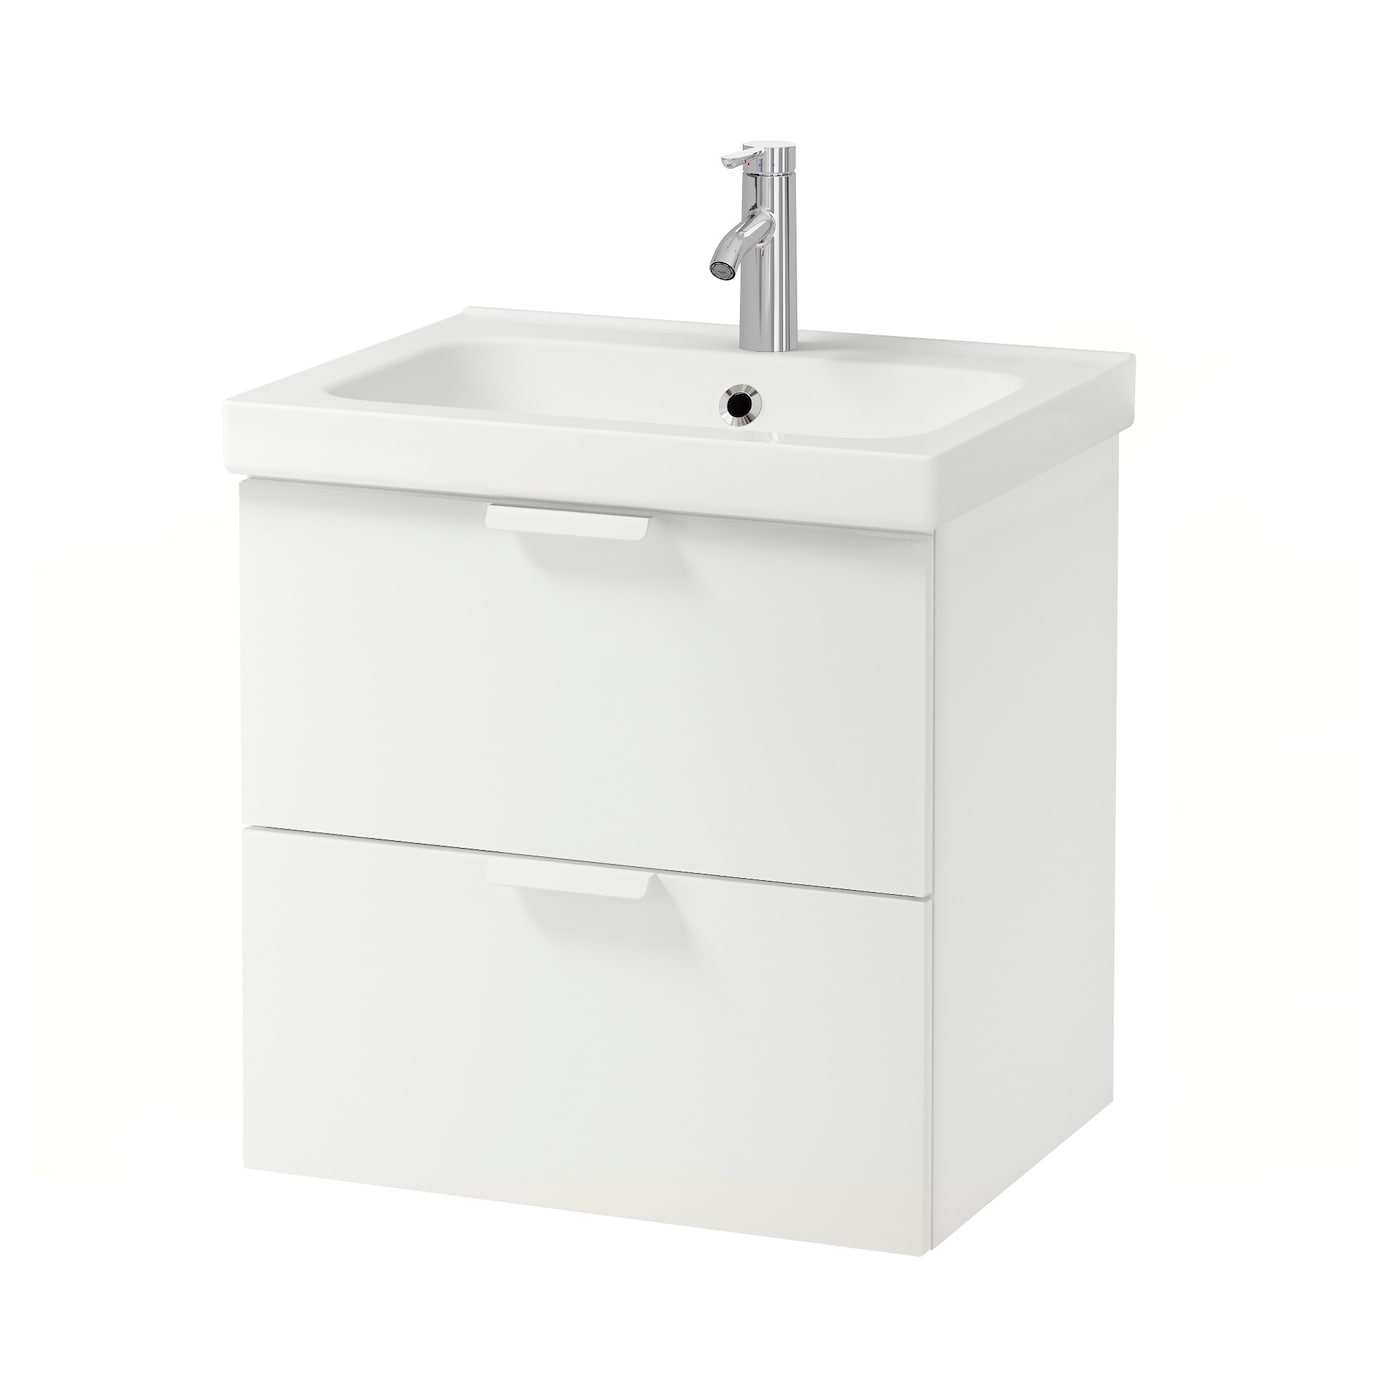 odensvik godmorgon wash stand with 2 drawers white. Black Bedroom Furniture Sets. Home Design Ideas